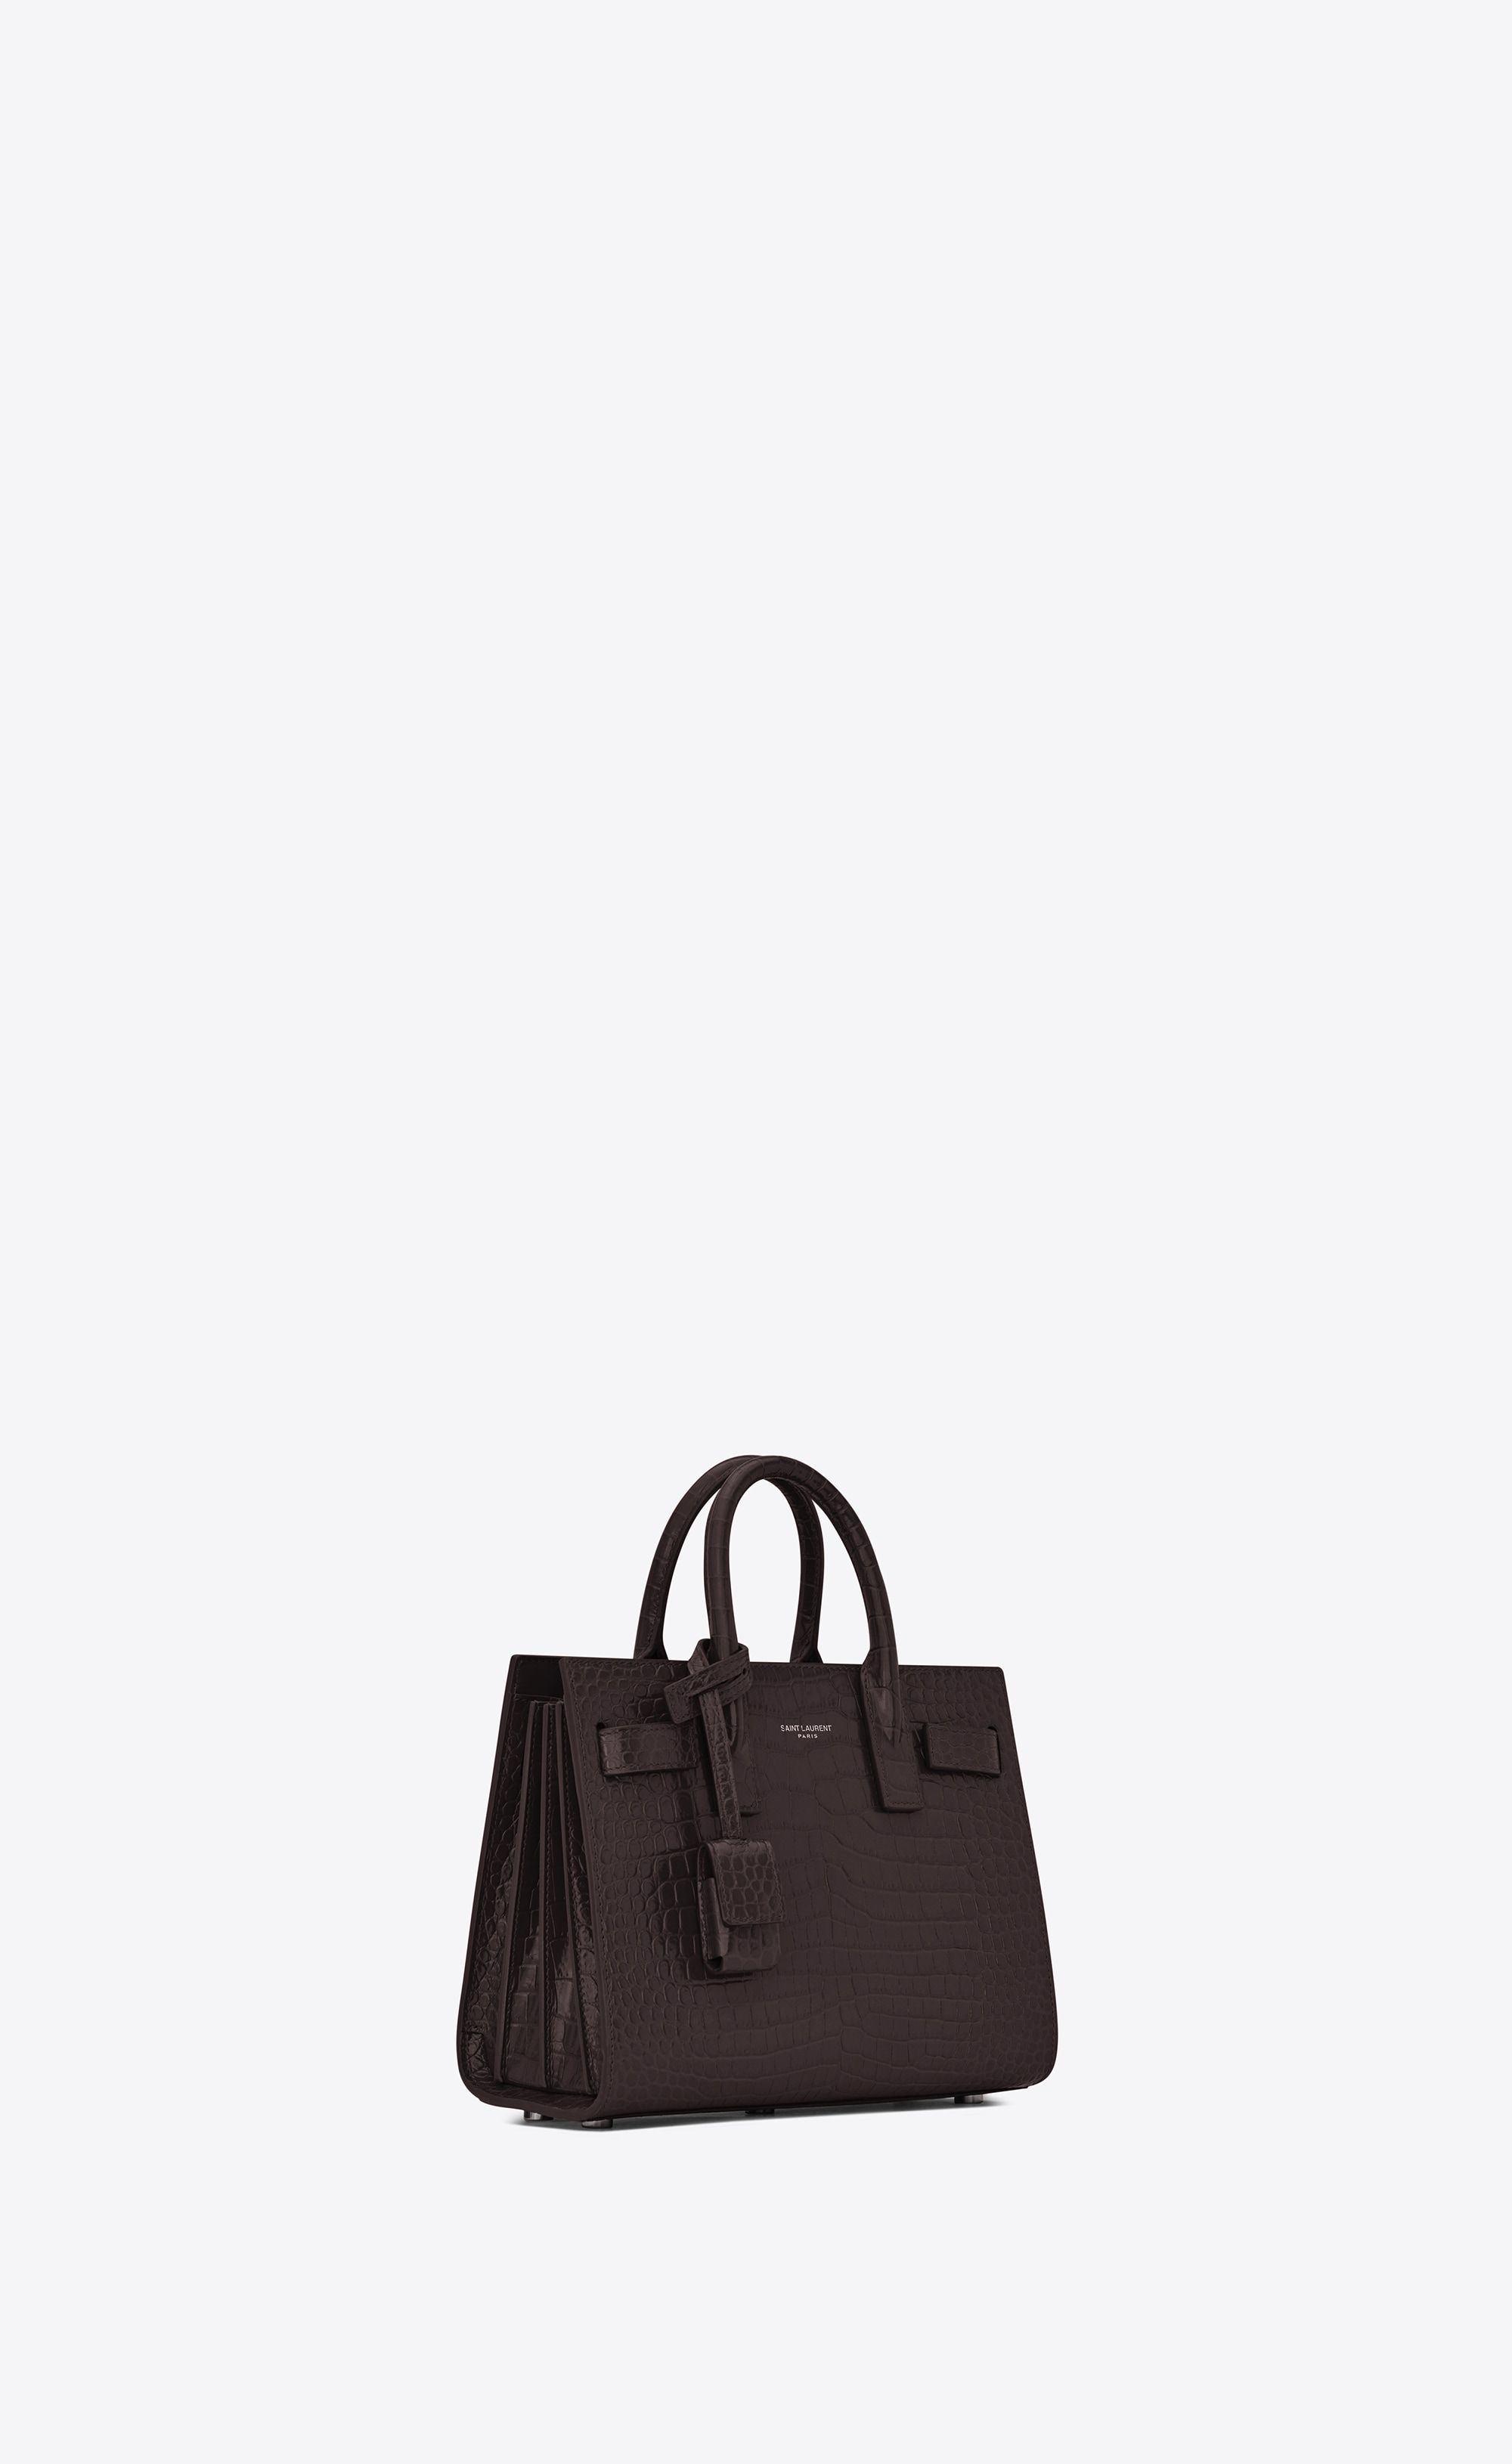 59fefbbfd4e2 Saint Laurent - Classic Nano Sac de Jour bag in black tulip crocodile  embossed shiny leather ($1,690)